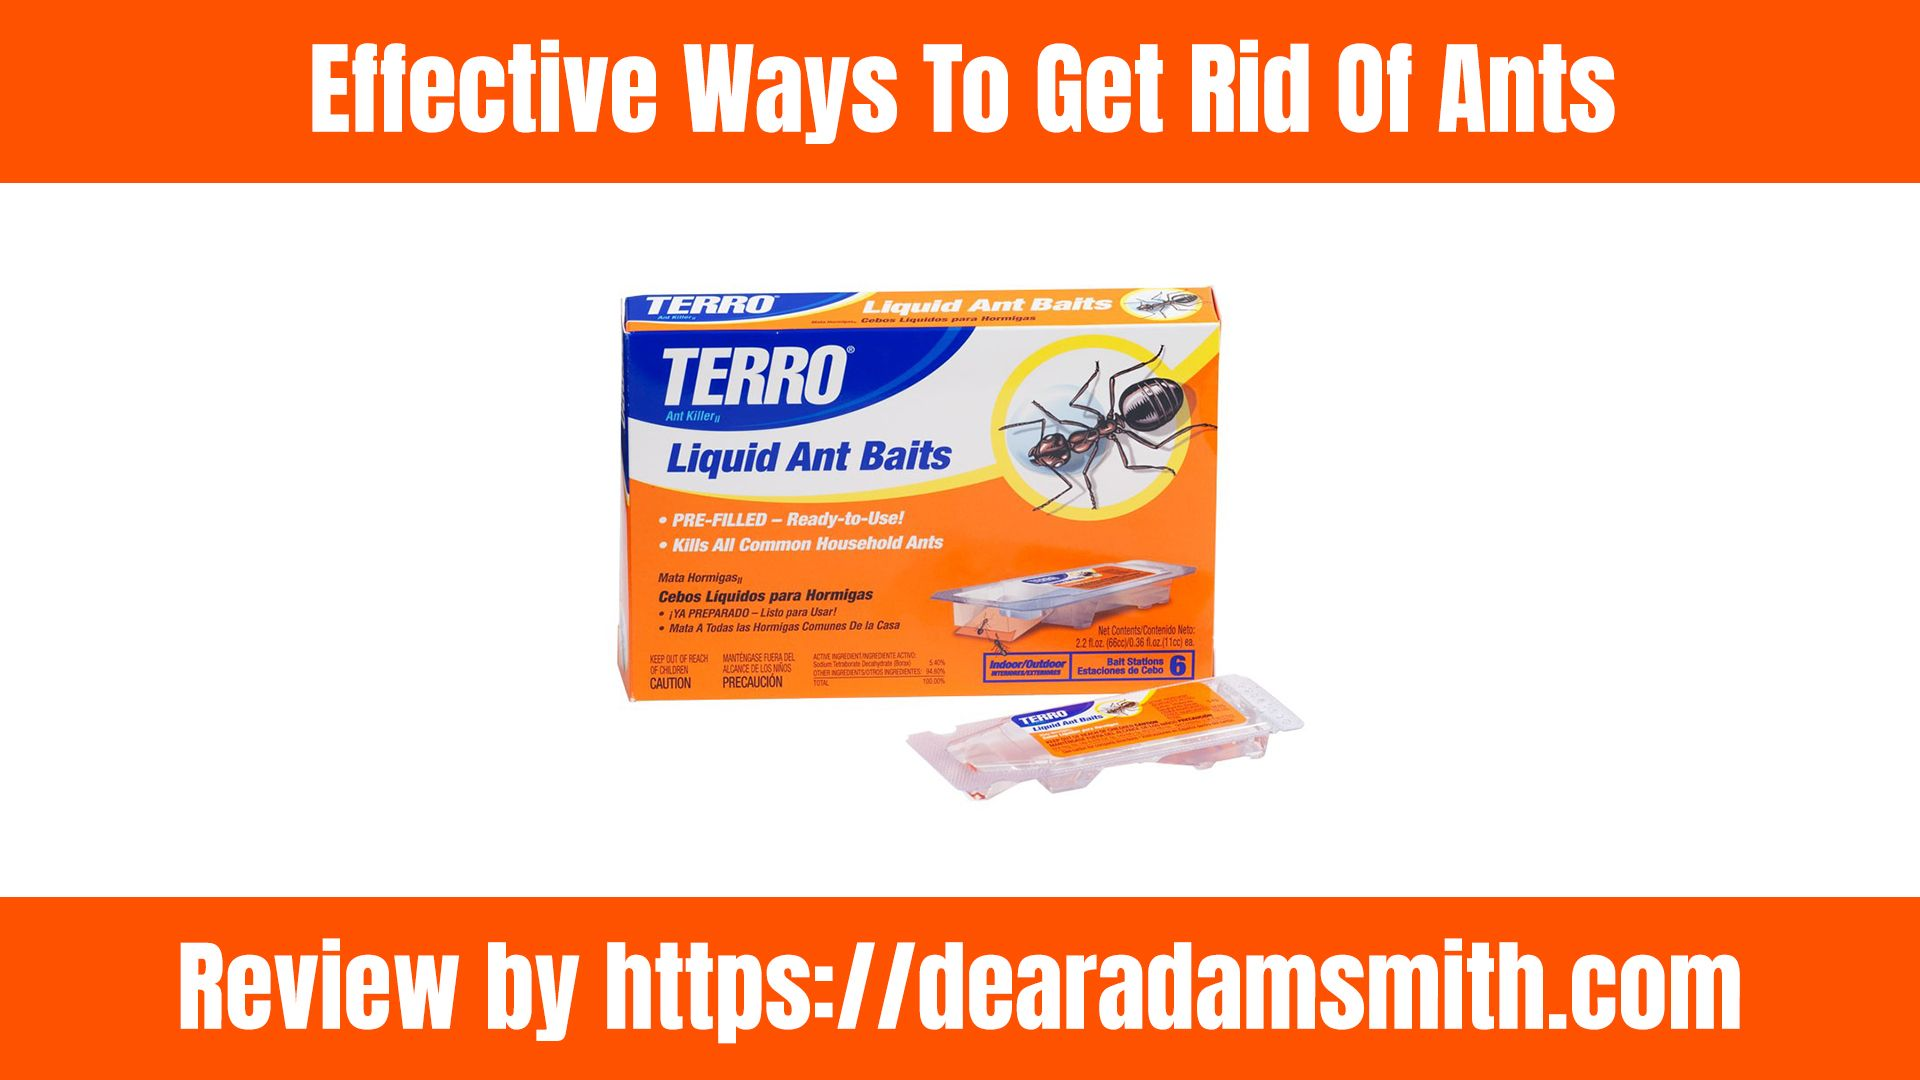 How To Get Rid Of Ants Simple Removal Rid of ants, Get